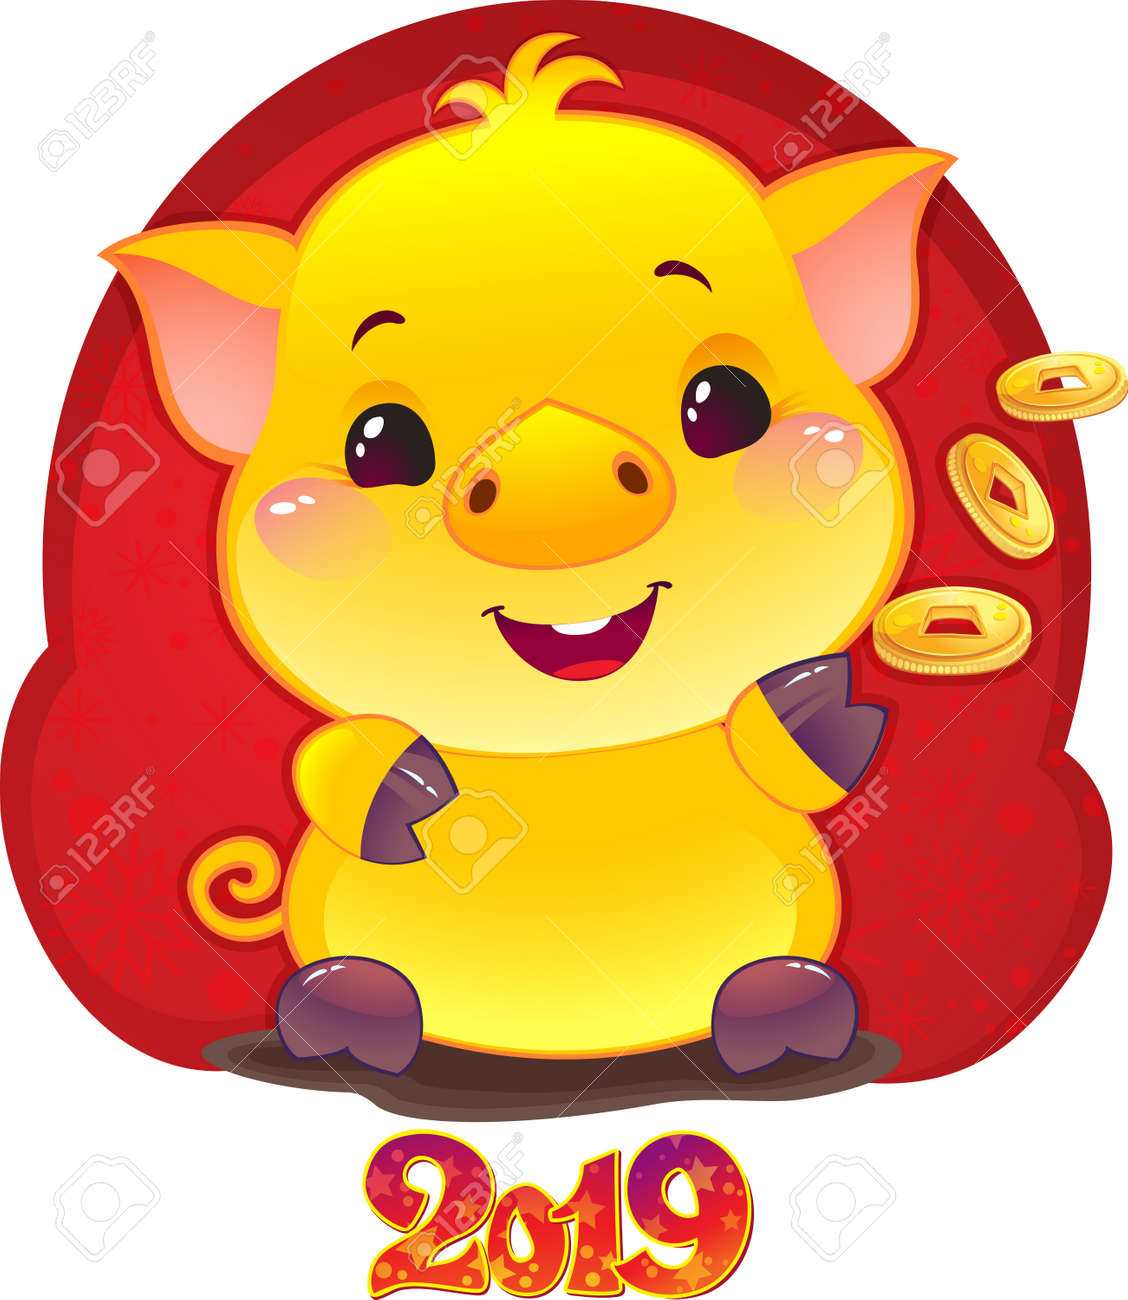 Yellow Earthy Pig Coat for the New Year 2019. Cute Symbol of Chinese Horoscope. - 111999546